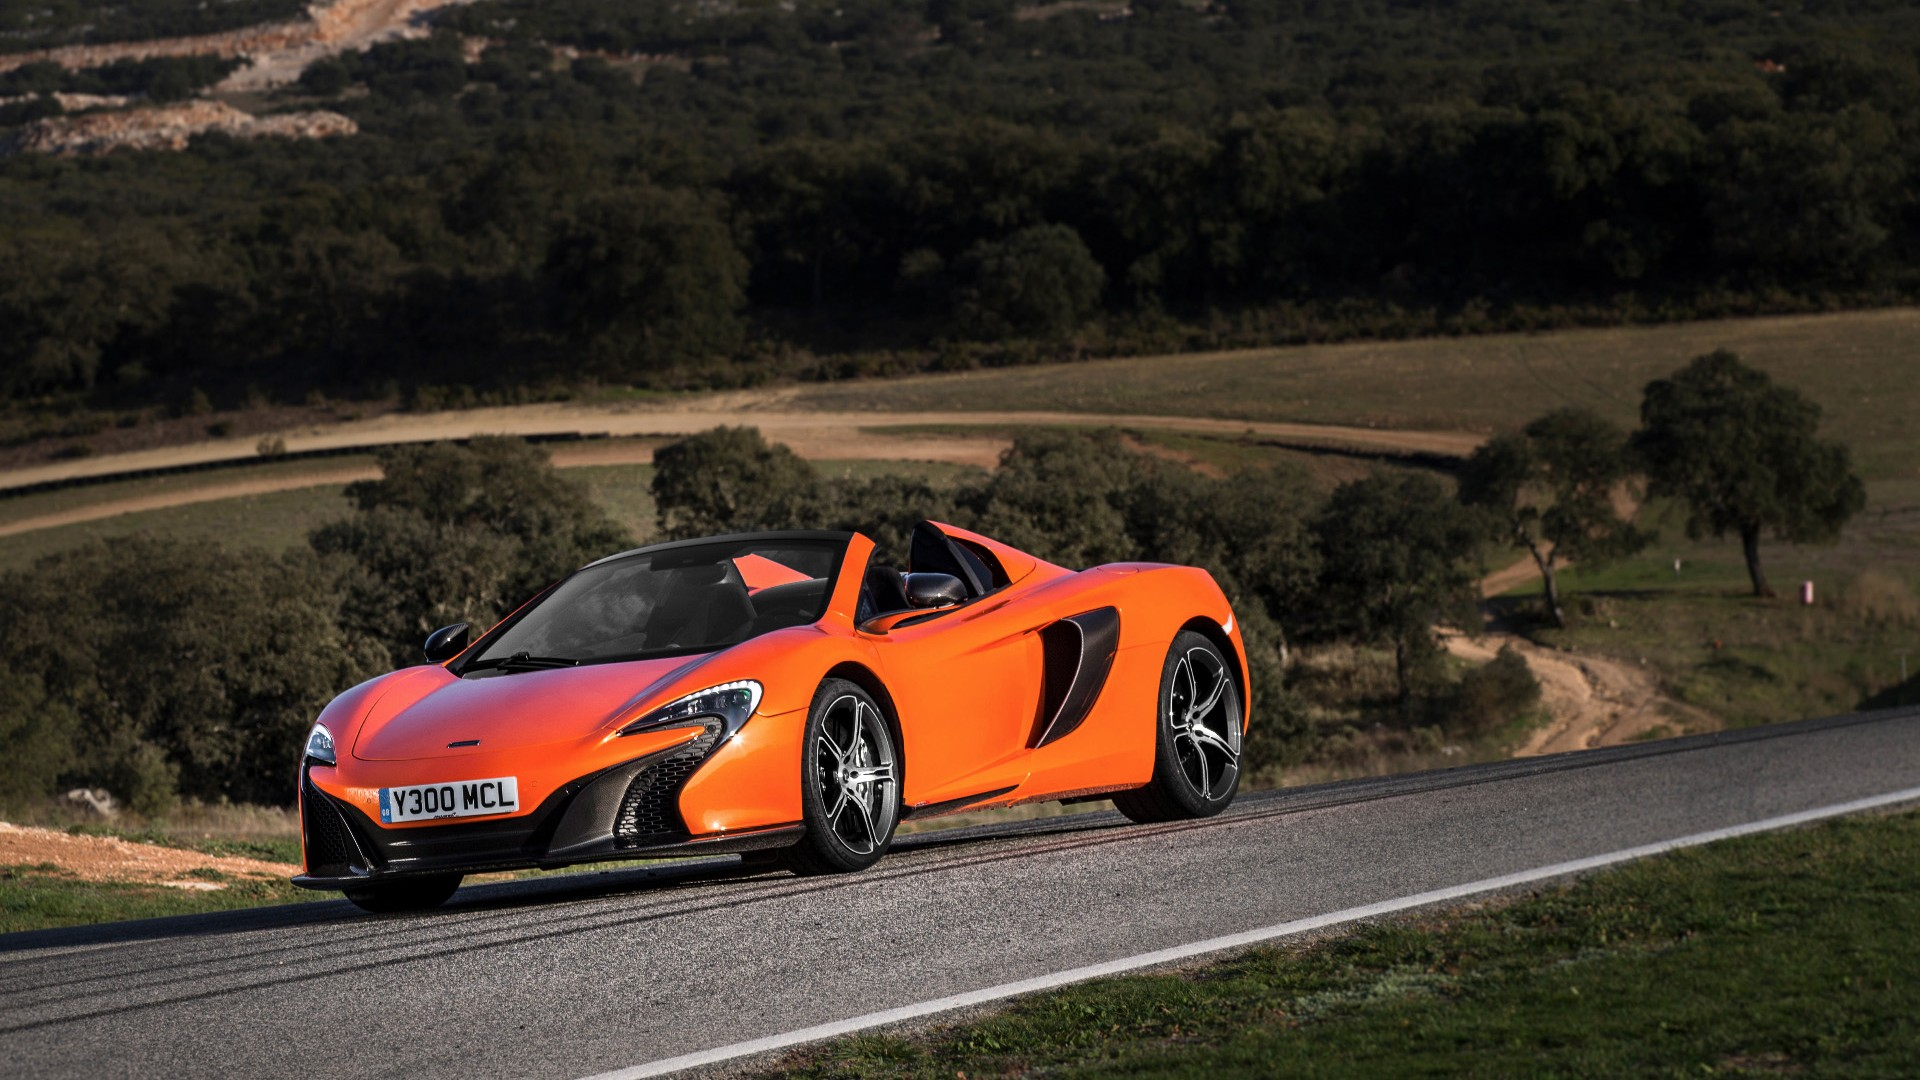 McClaren, Best British Cars